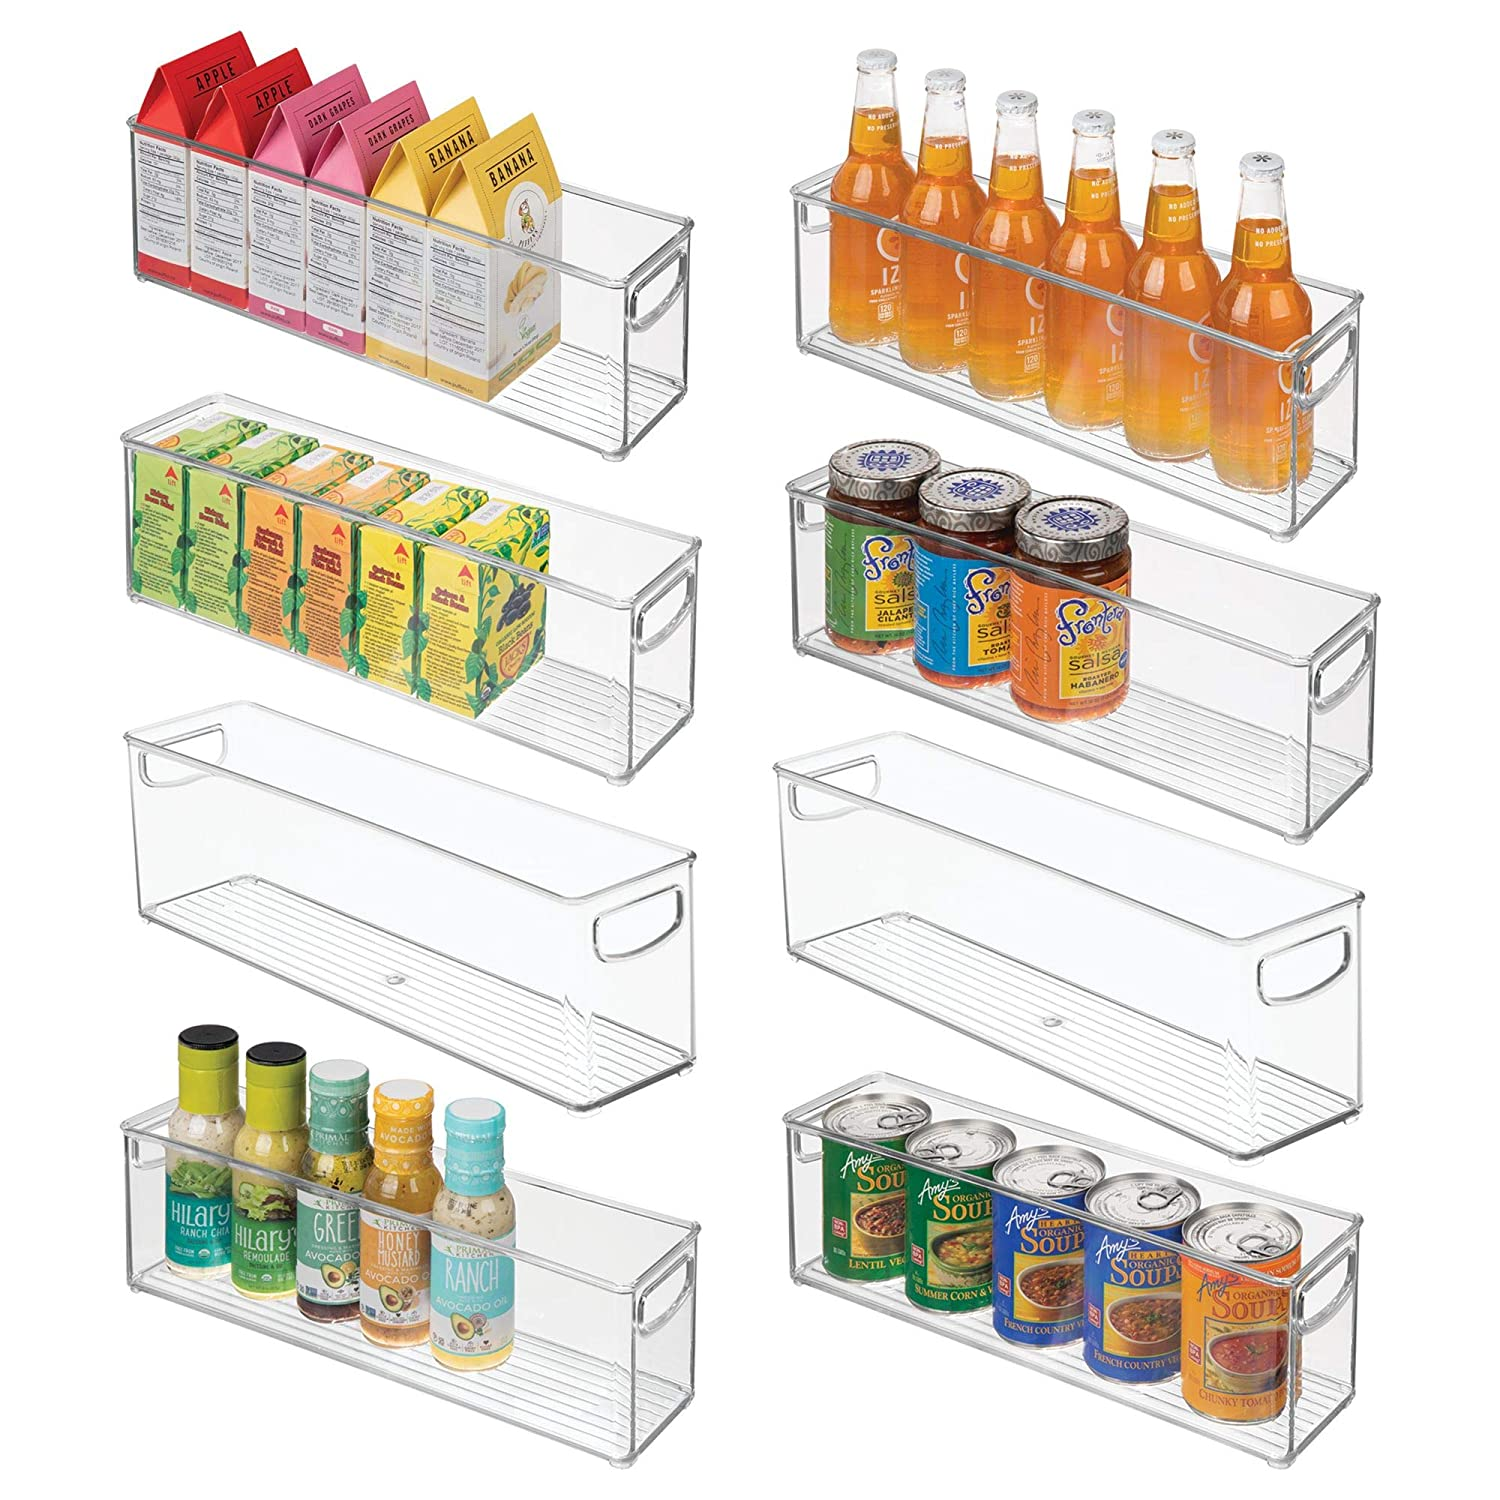 "mDesign Plastic Stackable Kitchen Pantry Cabinet, Refrigerator or Freezer Food Storage Bins with Handles - Organizer for Fruit, Yogurt, Snacks, Pasta - BPA Free, 16"" Long, 8 Pack - Clear"